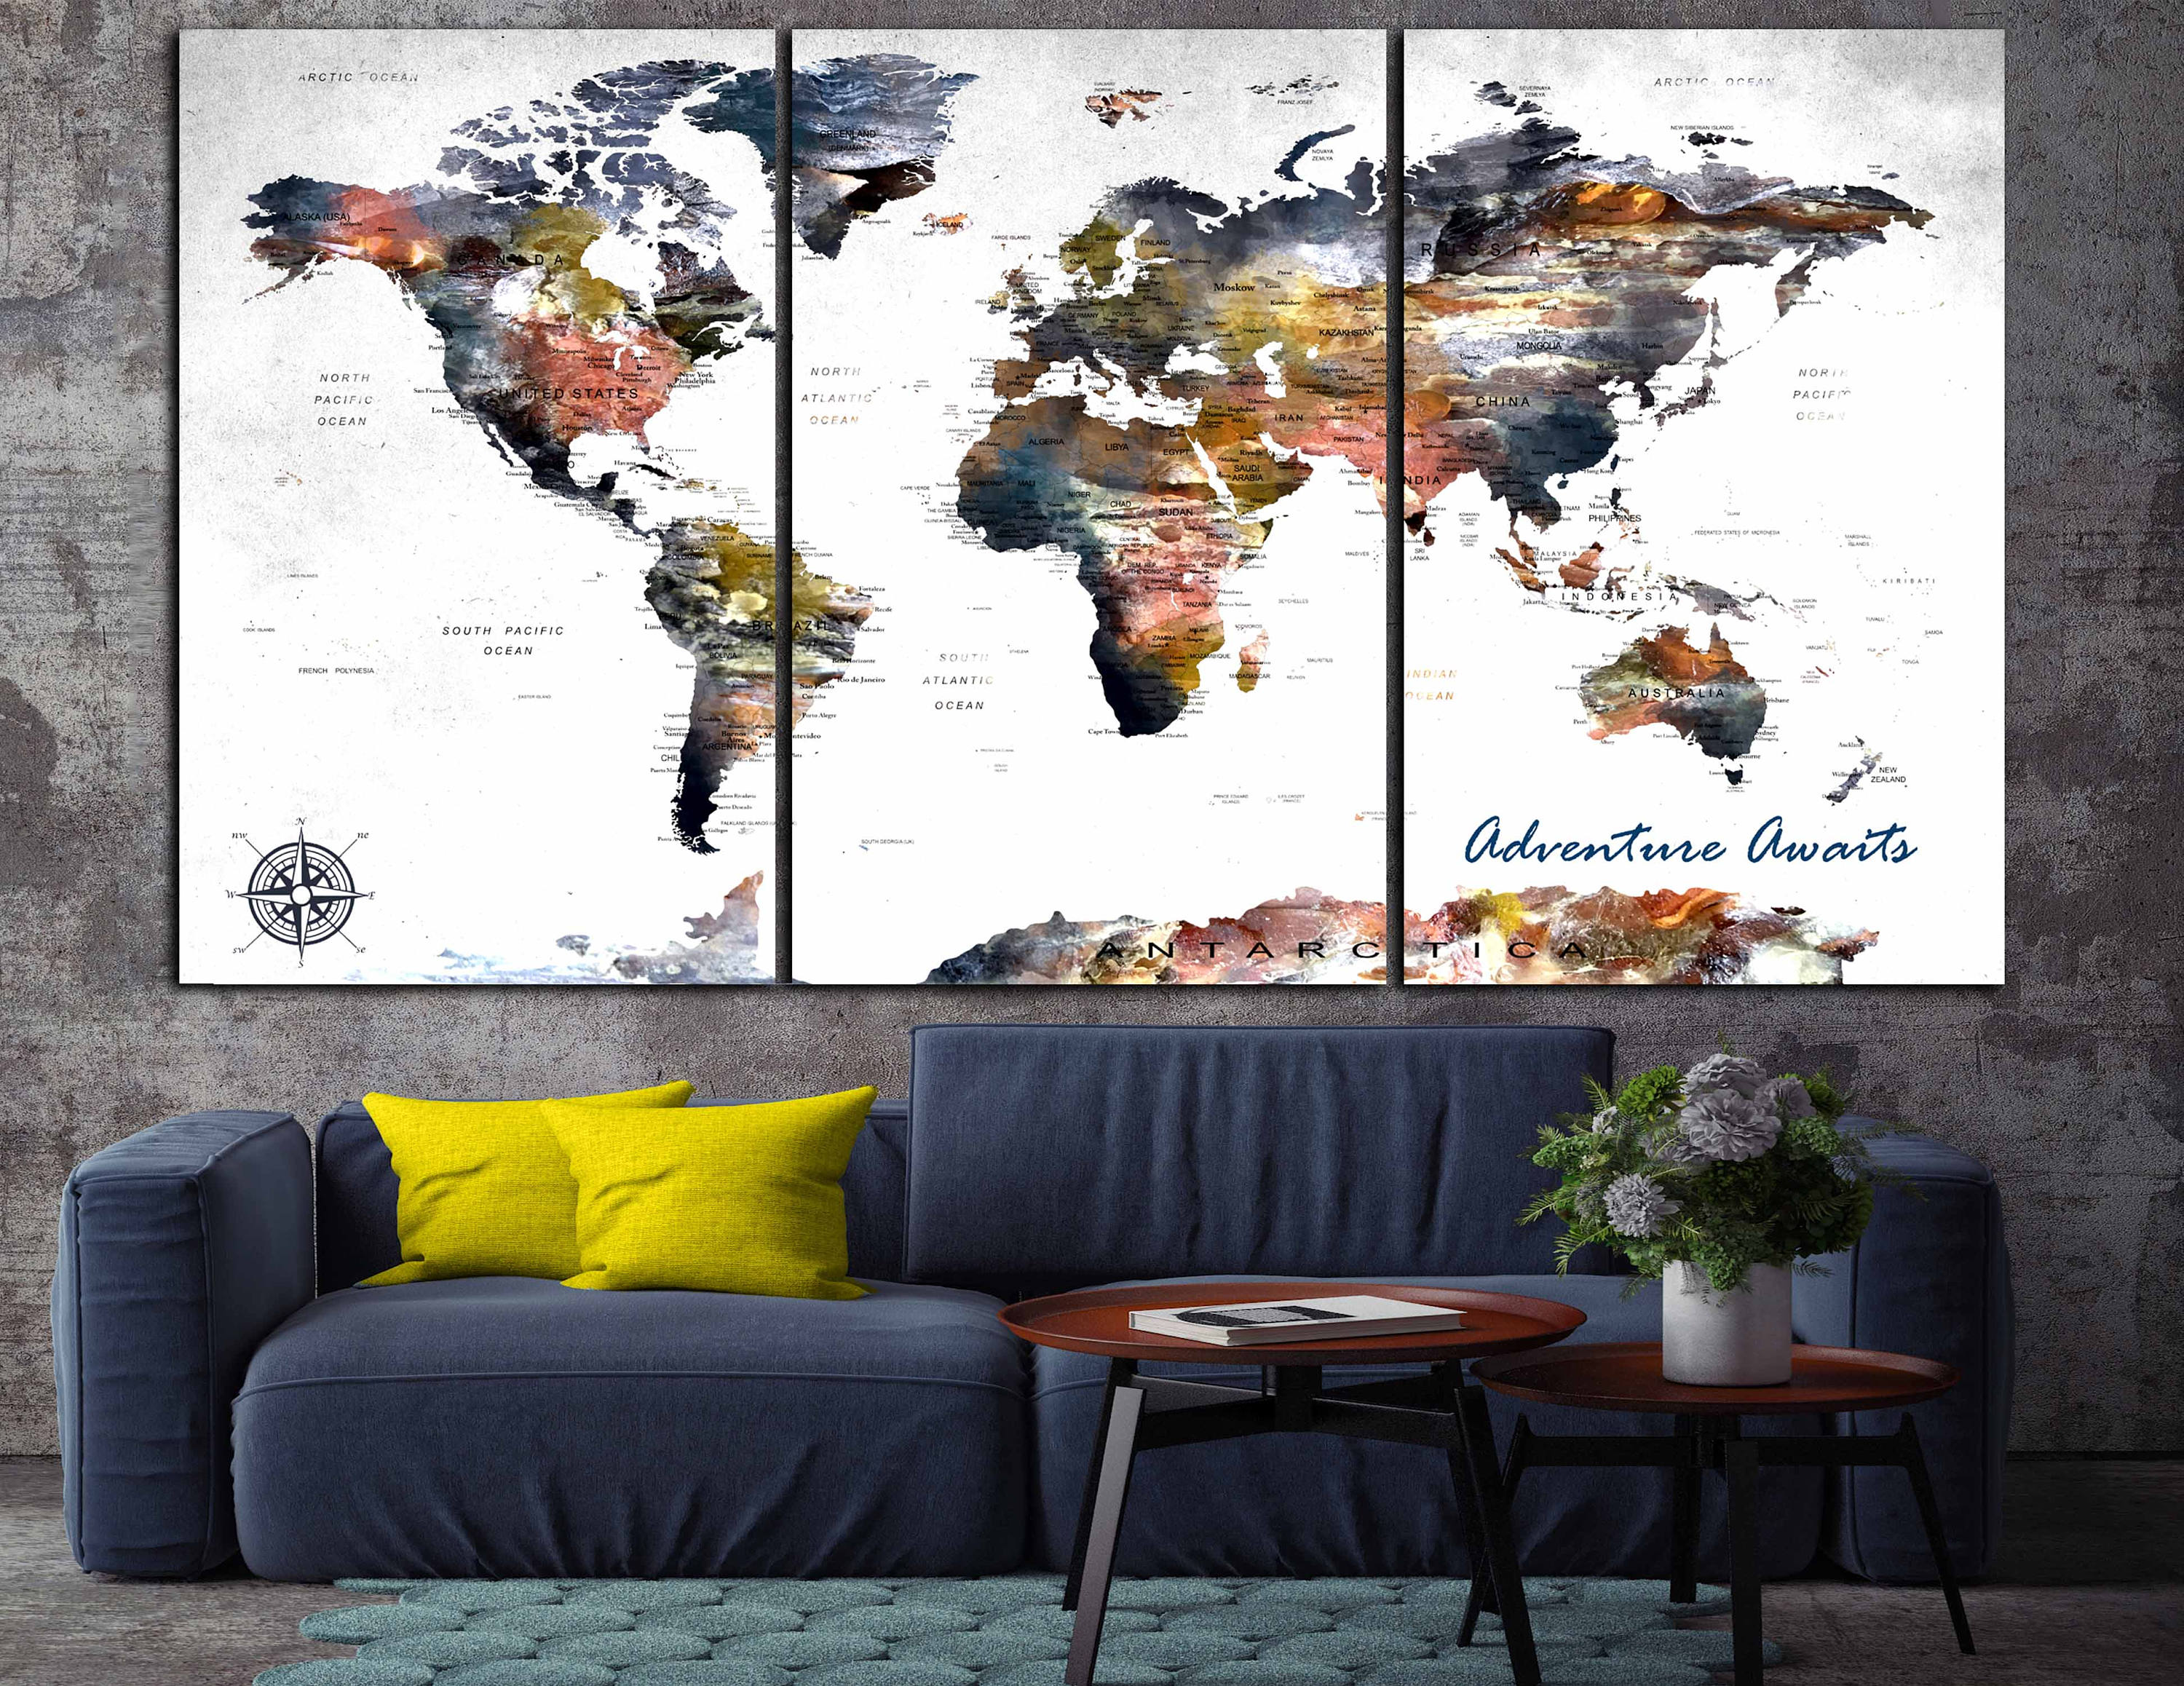 World map canvas large world map world map wall art large map panels world map canvas large world map world map wall art large map panels gumiabroncs Gallery